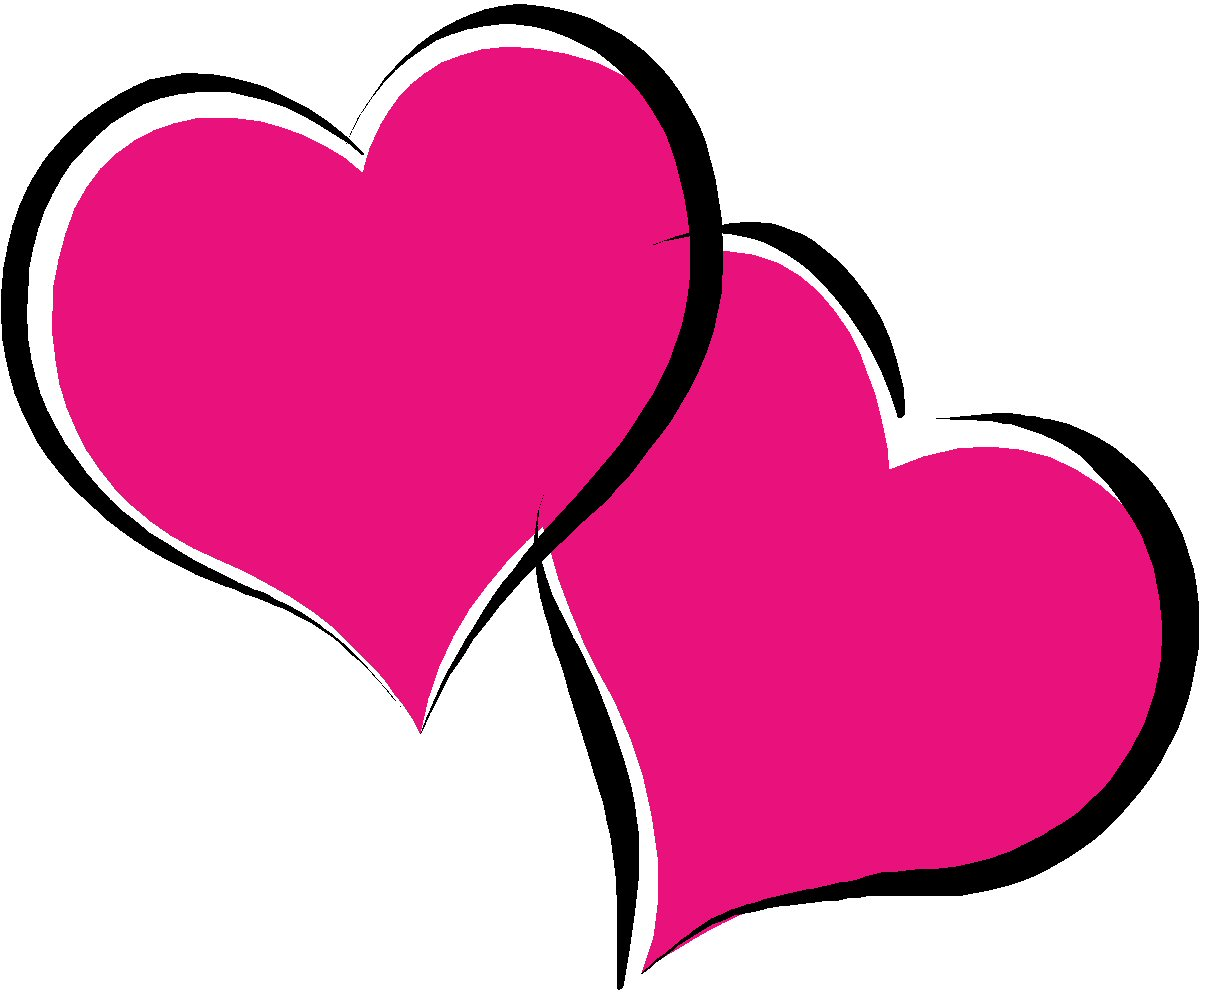 Free Valentine Hearts Screensaver - ClipArt Best - ClipArt Best